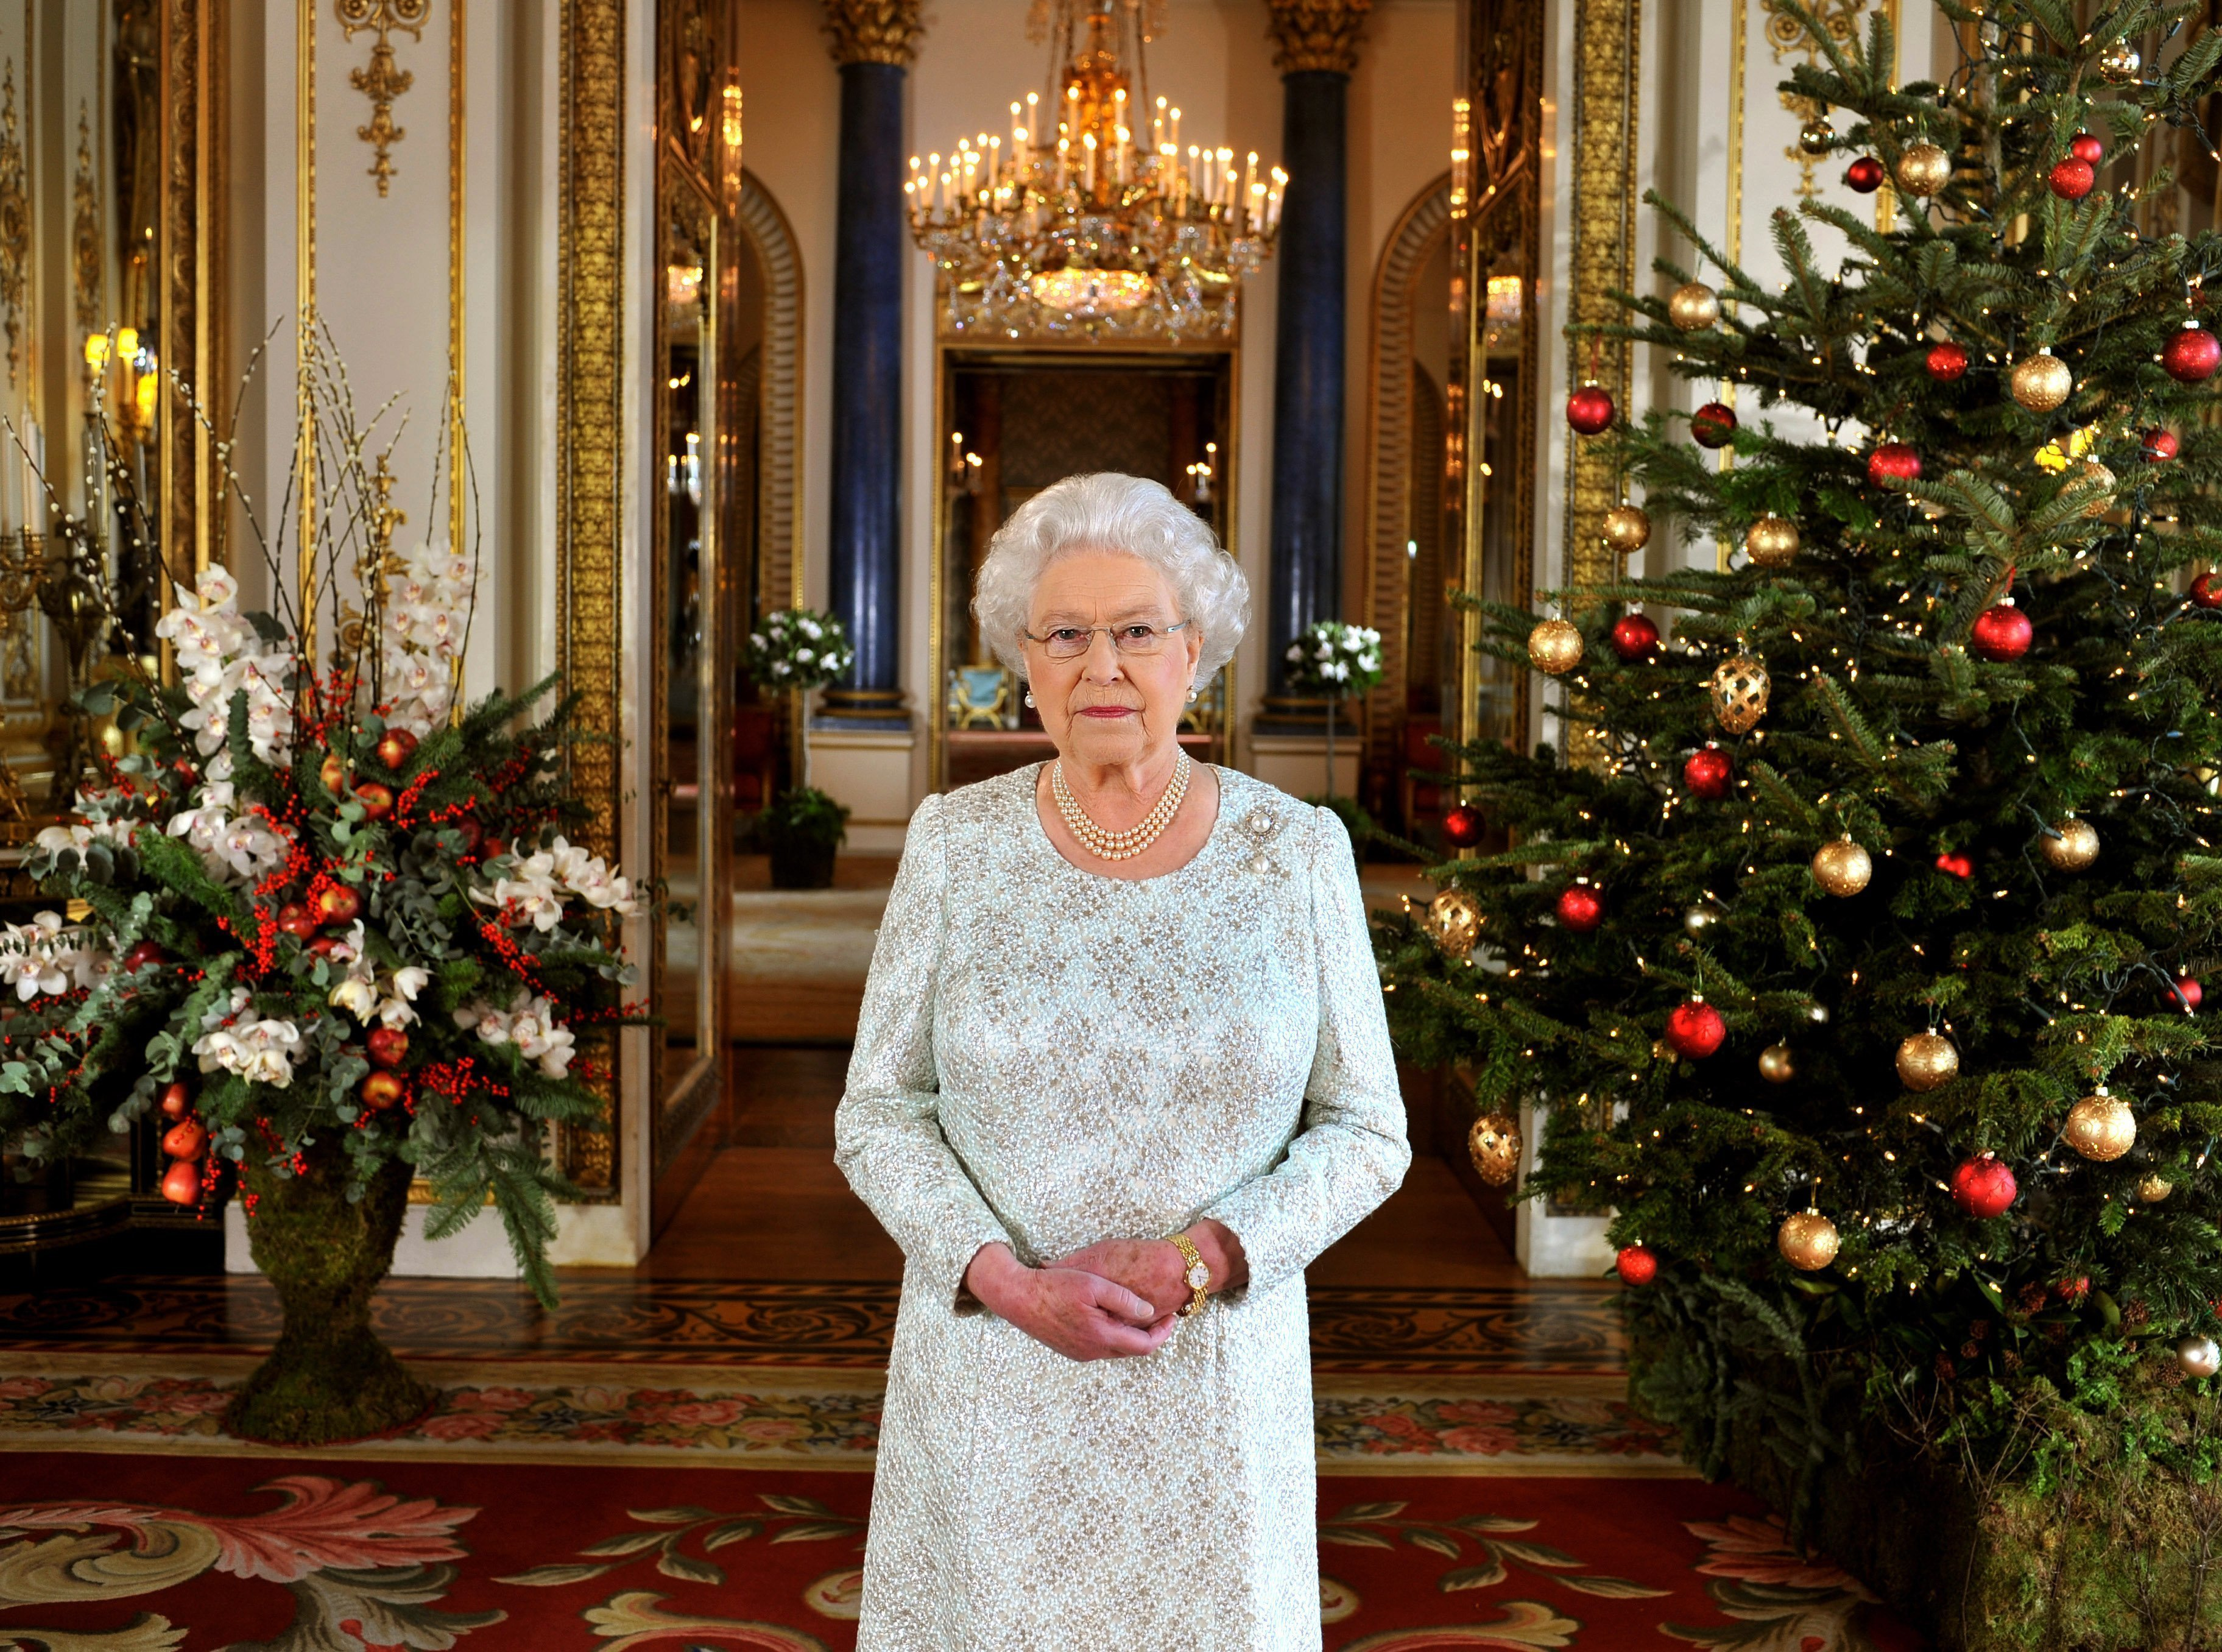 Queen Elizabeth II records her Christmas message to the Commonwealth, in 3D for the first time, in the White Drawing Room at Buckingham Palace on December 7, 2012, in London England. | Source: Getty Images.